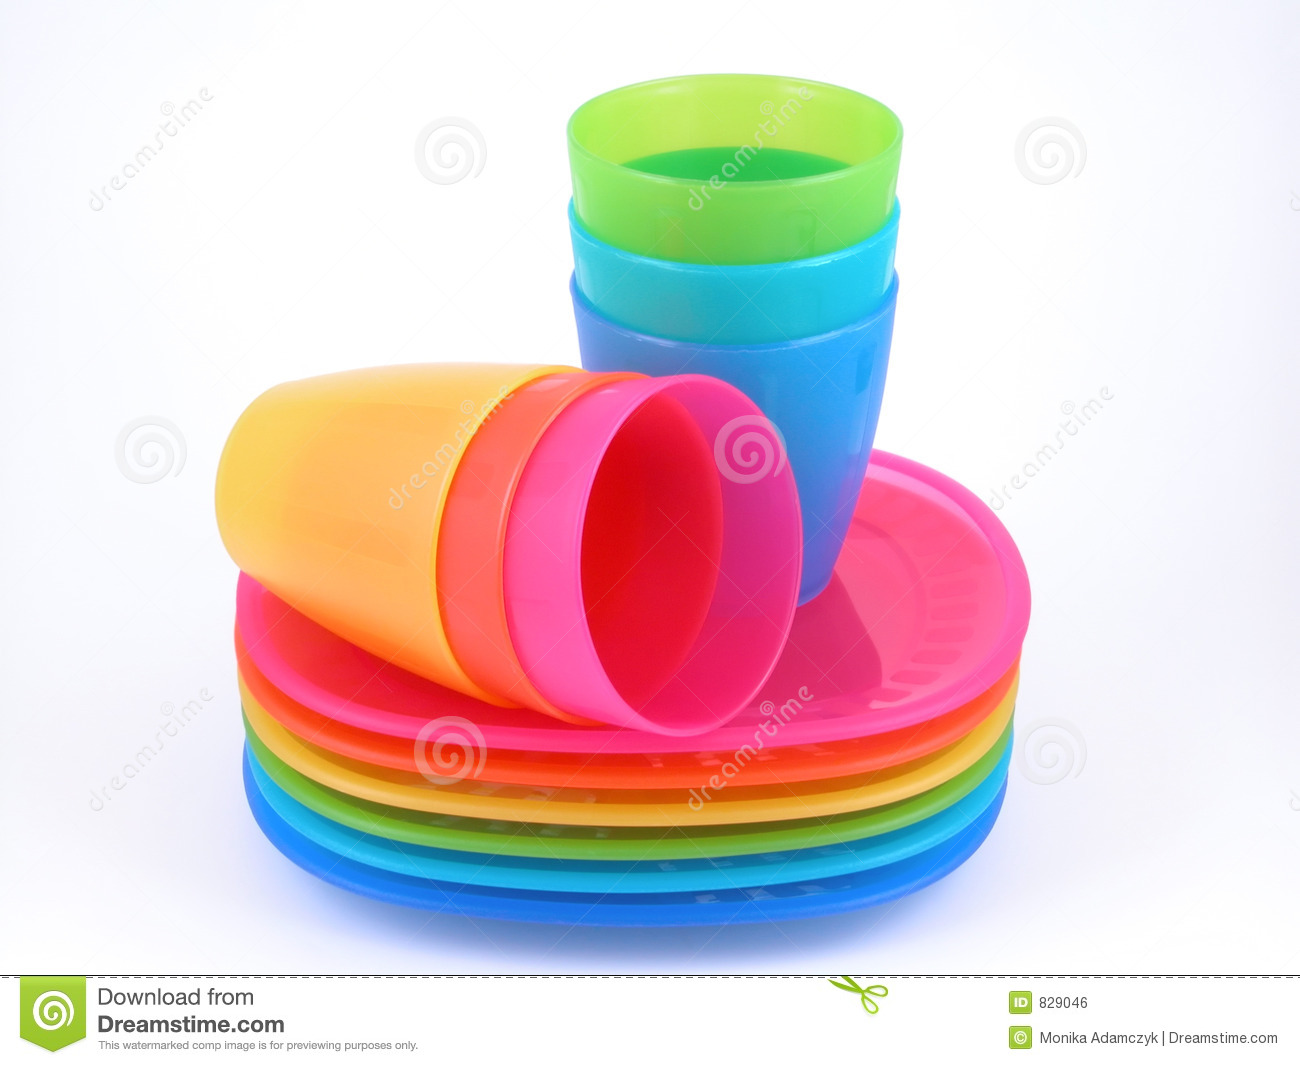 Plastic Cups And Plates Royalty Free Stock Image